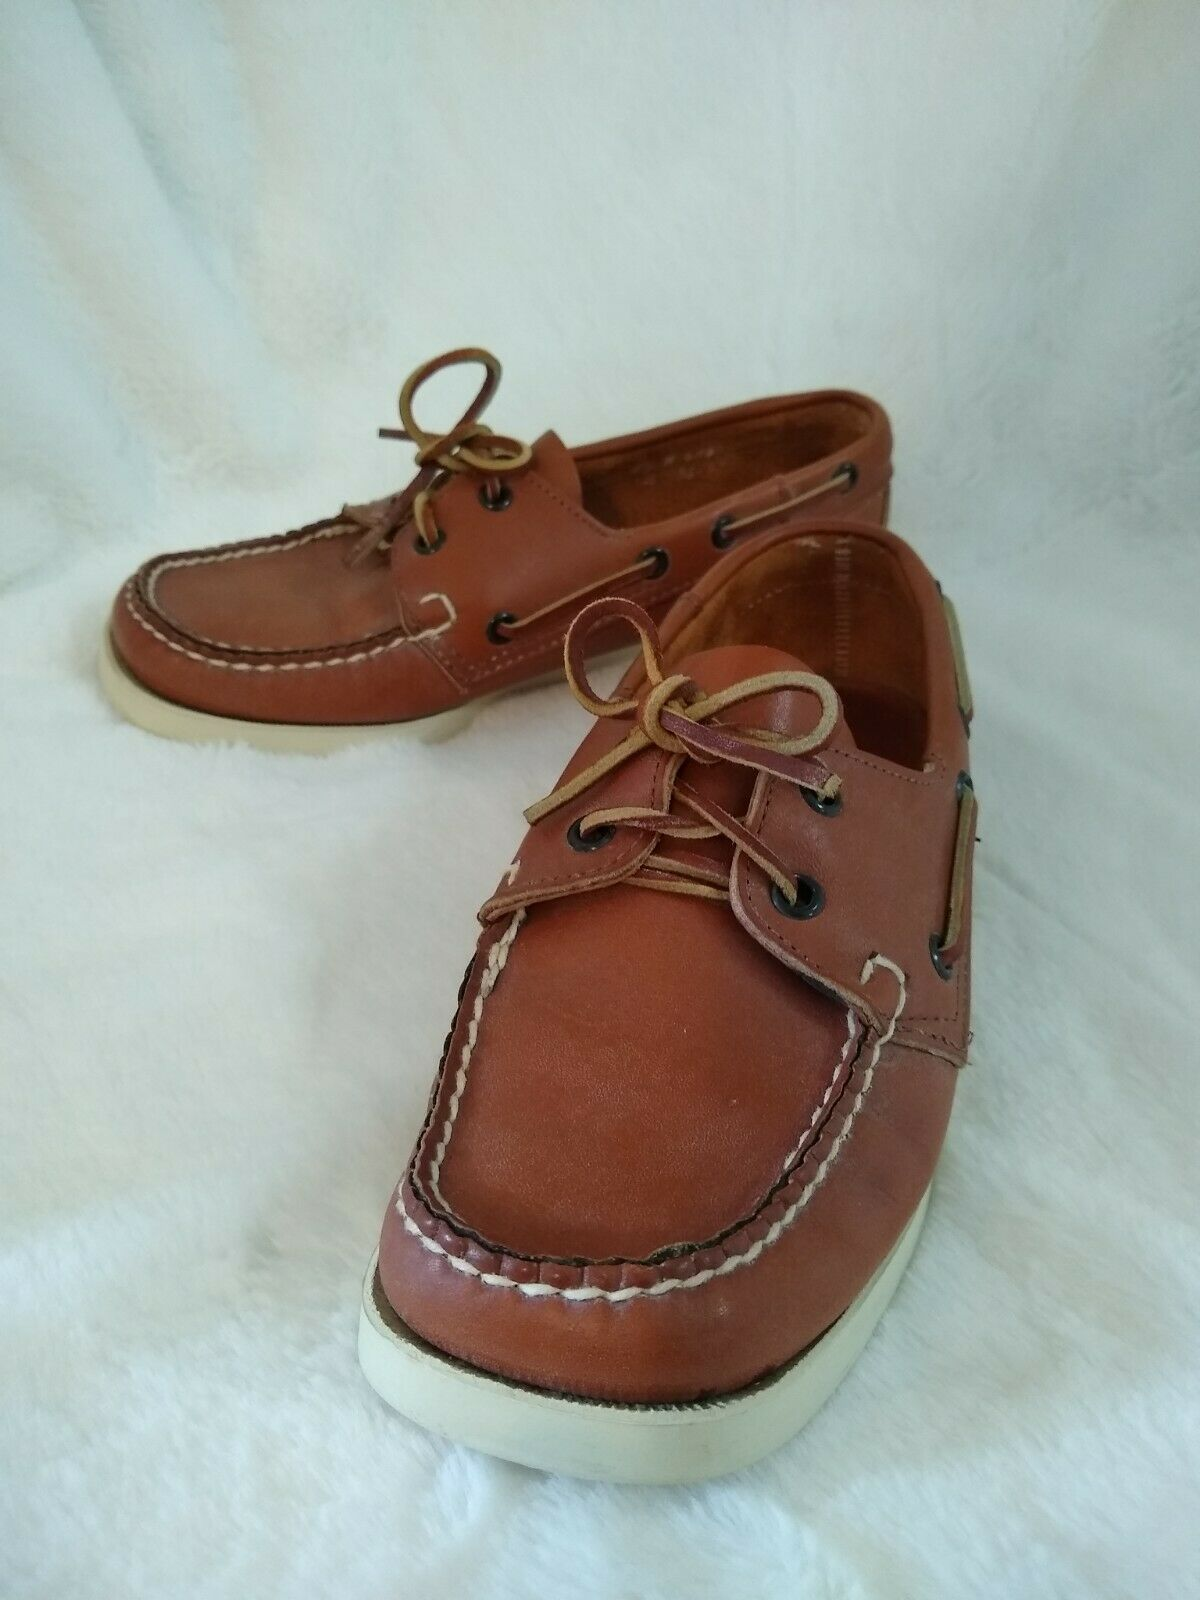 Men's Sebago Docksides Leather Lace up Boat Shoes Deck shoes Size 7.5M USA Made